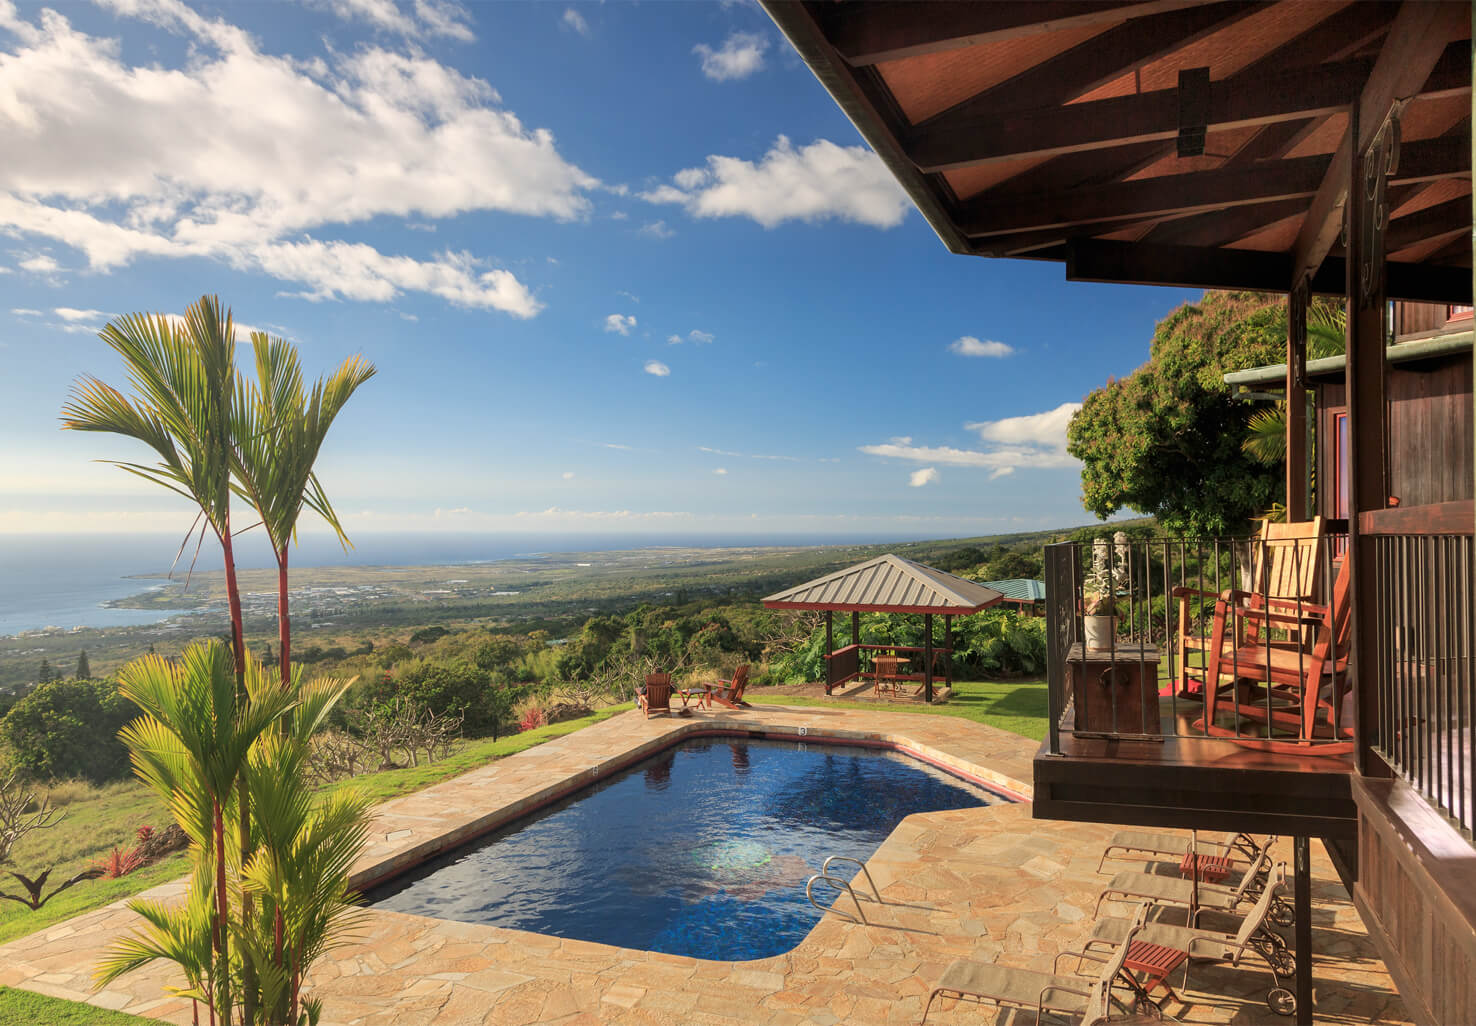 Pool and tropical grouds overlooking the Kona coast